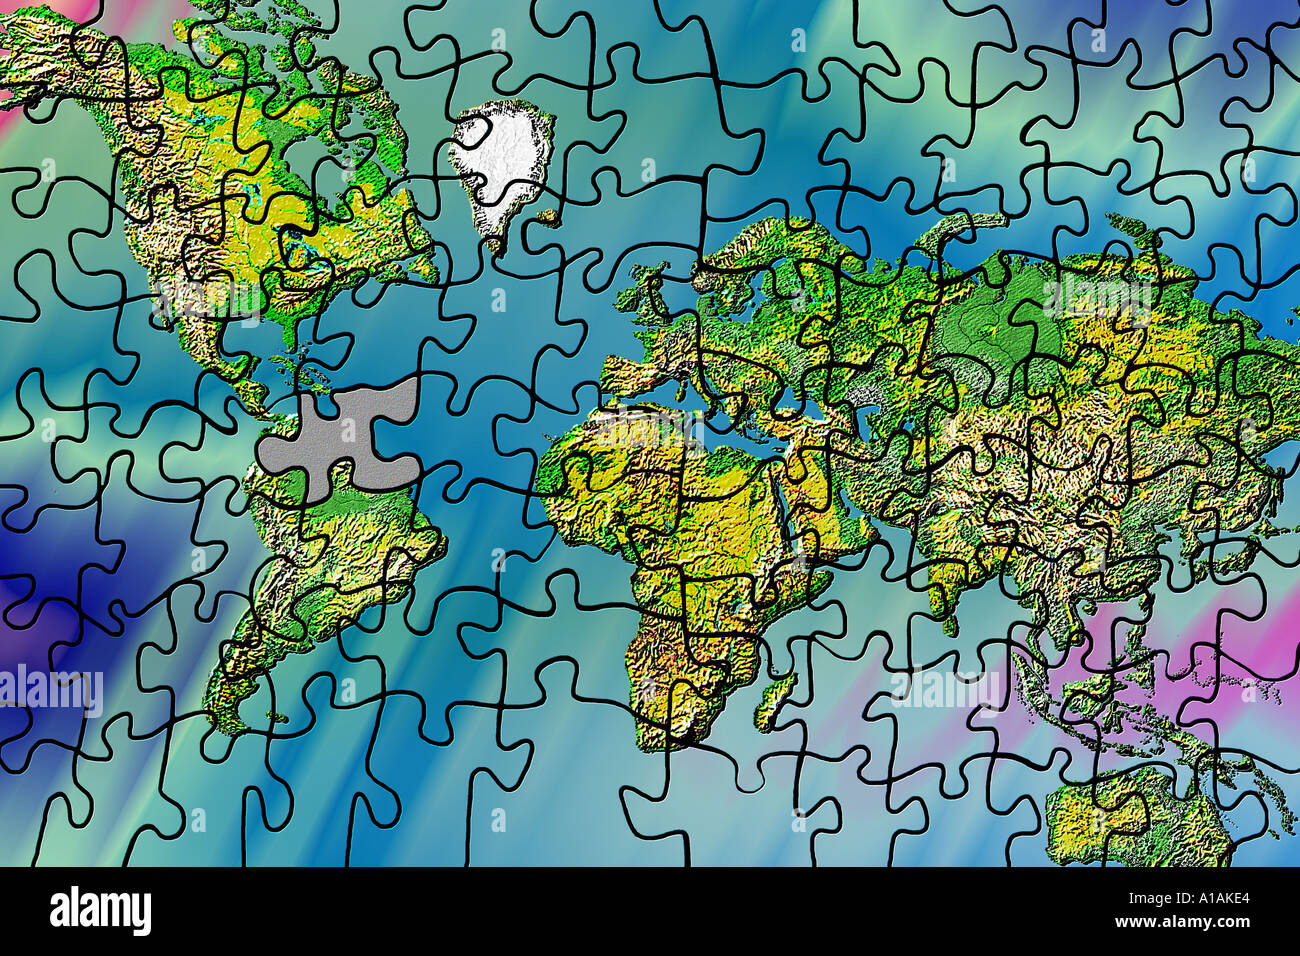 World Map Puzzle With Missing Piece Photo Royalty Free – Map World Puzzle